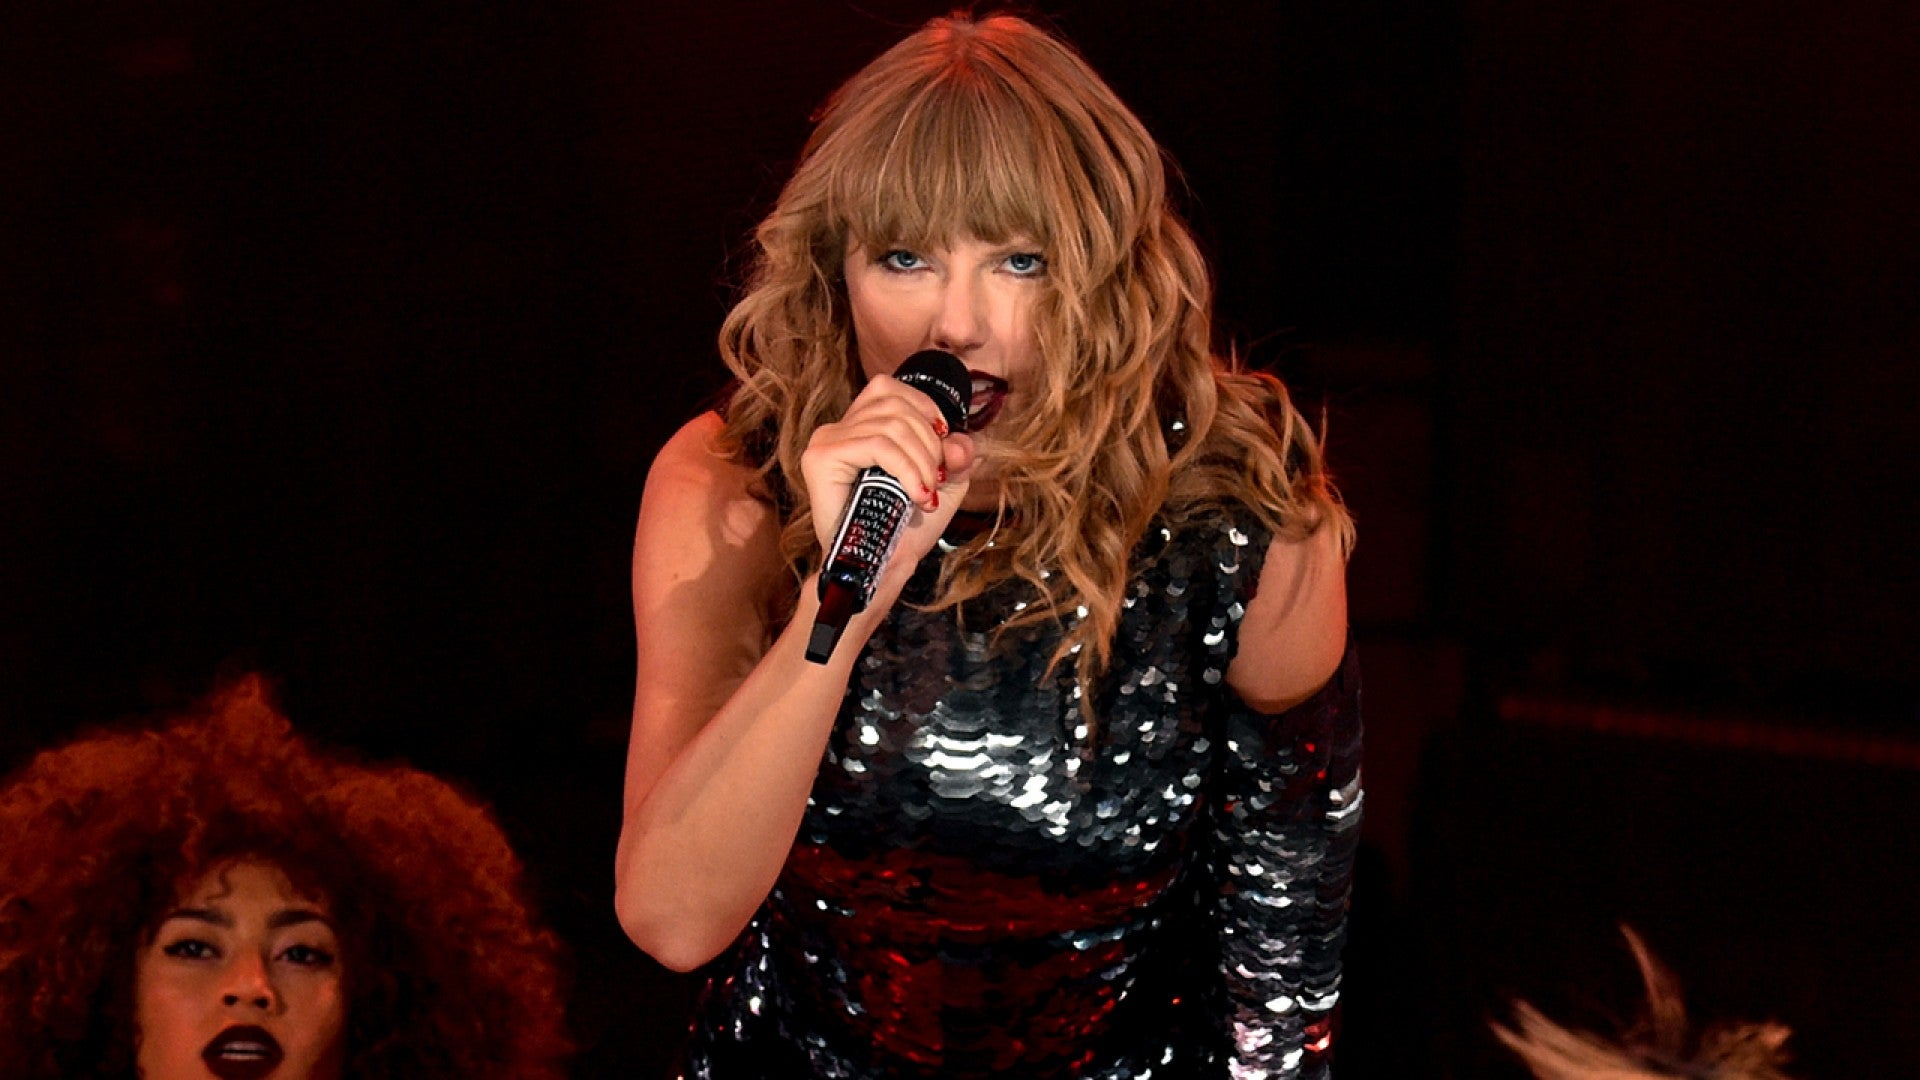 Here S Why Taylor Swift Isn T Up For Video Of The Year At Mtv Vmas Exclusive Entertainment Tonight